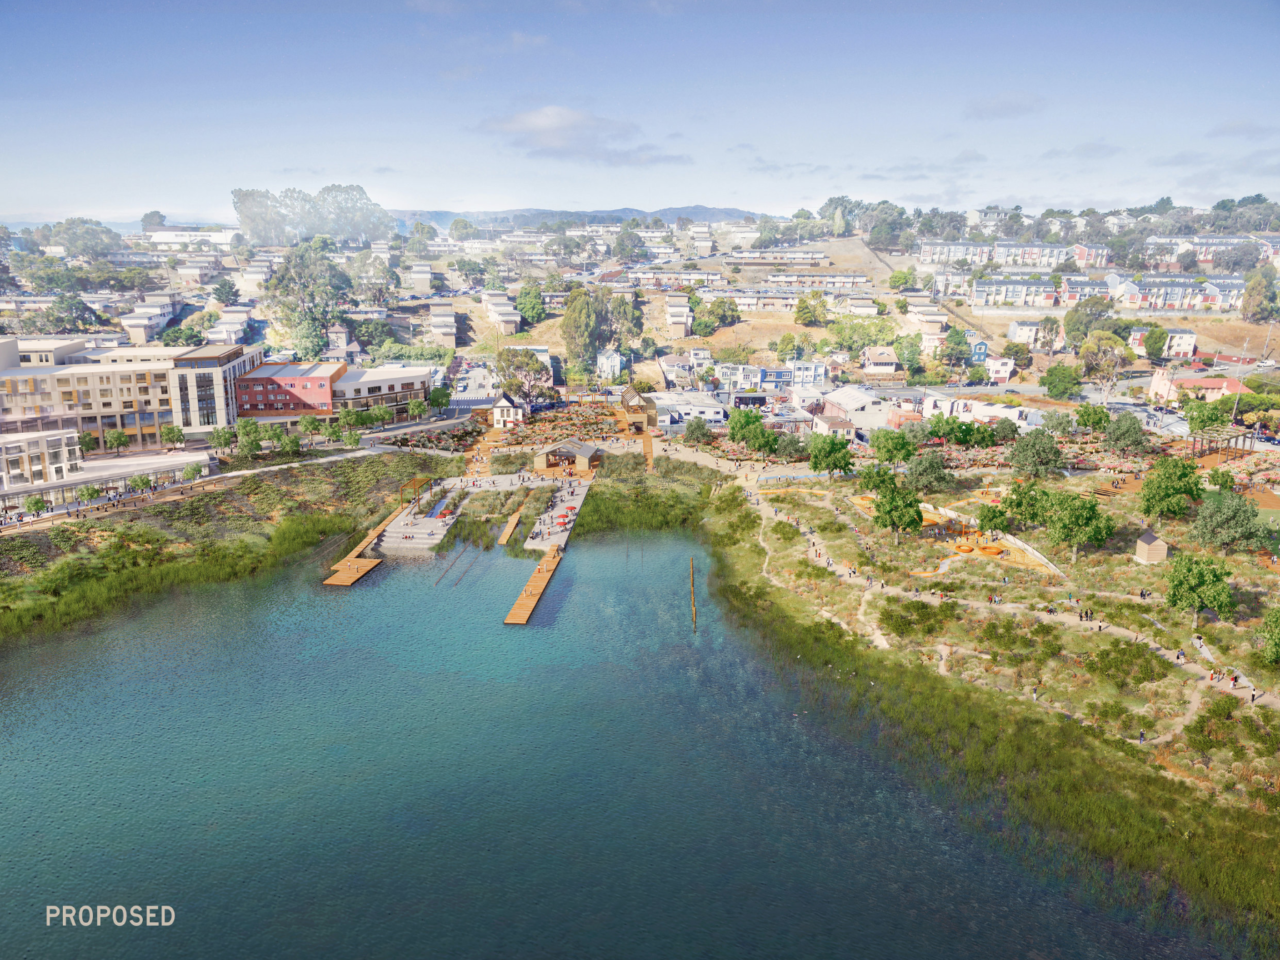 Here's what the developers propose the new park and development will look like